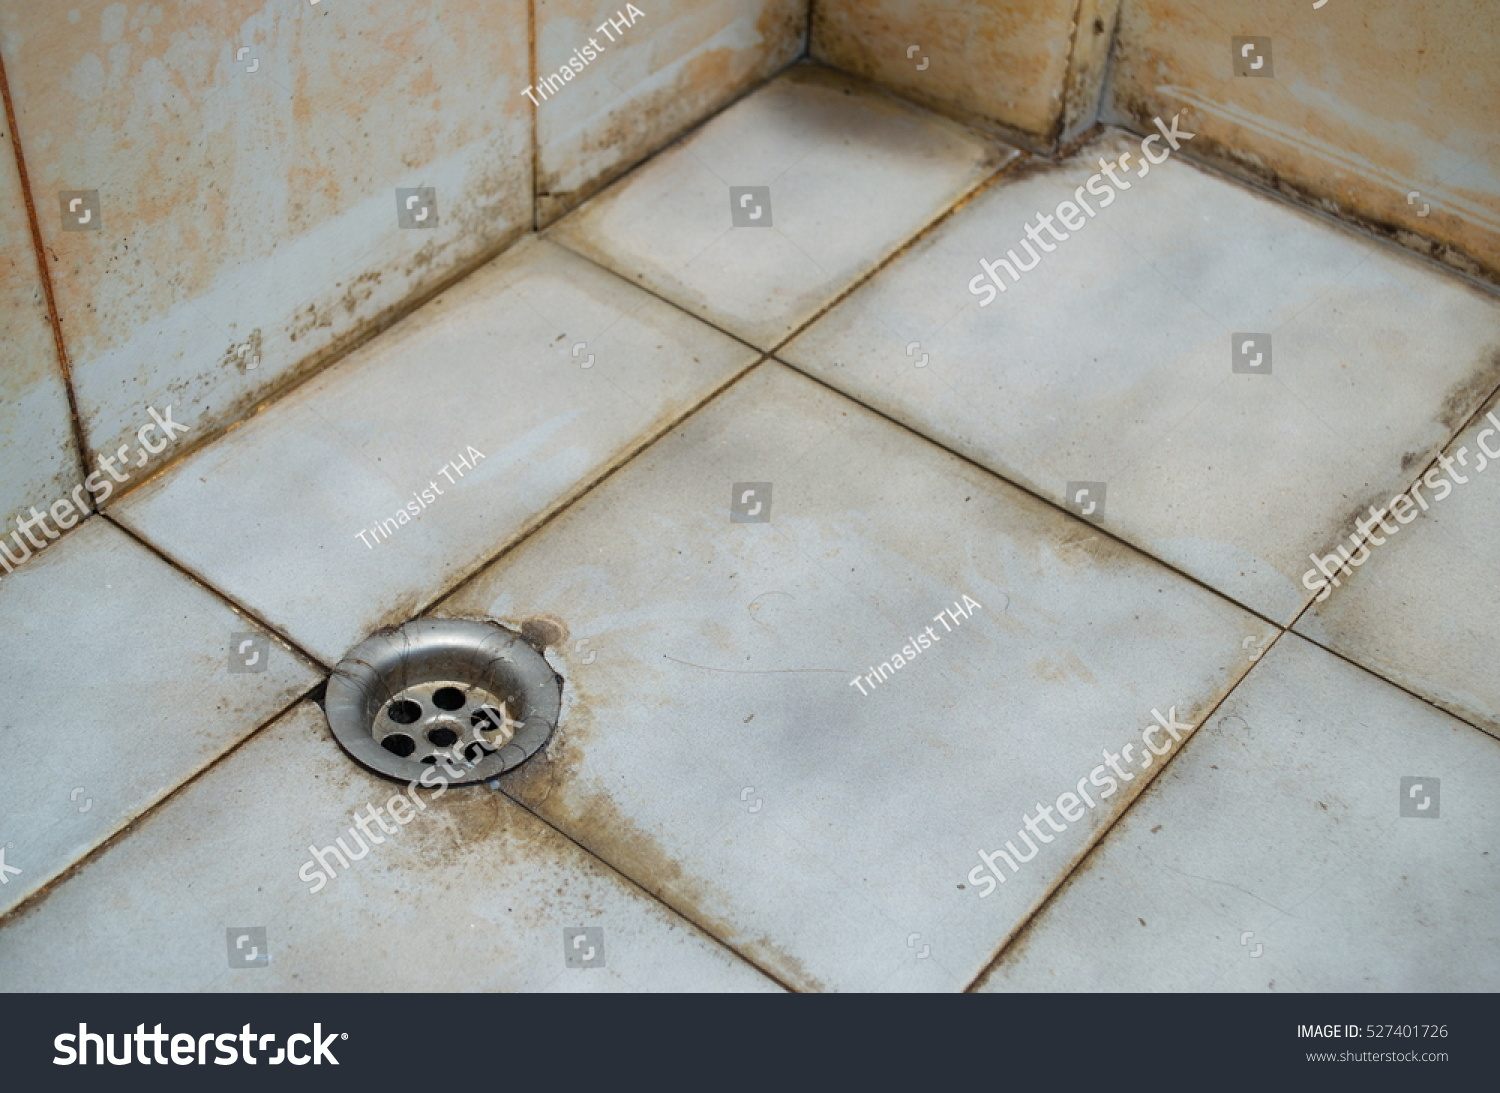 Dirty Dirt Accumulated Bathroom Not Clean Stock Photo (Download Now ...